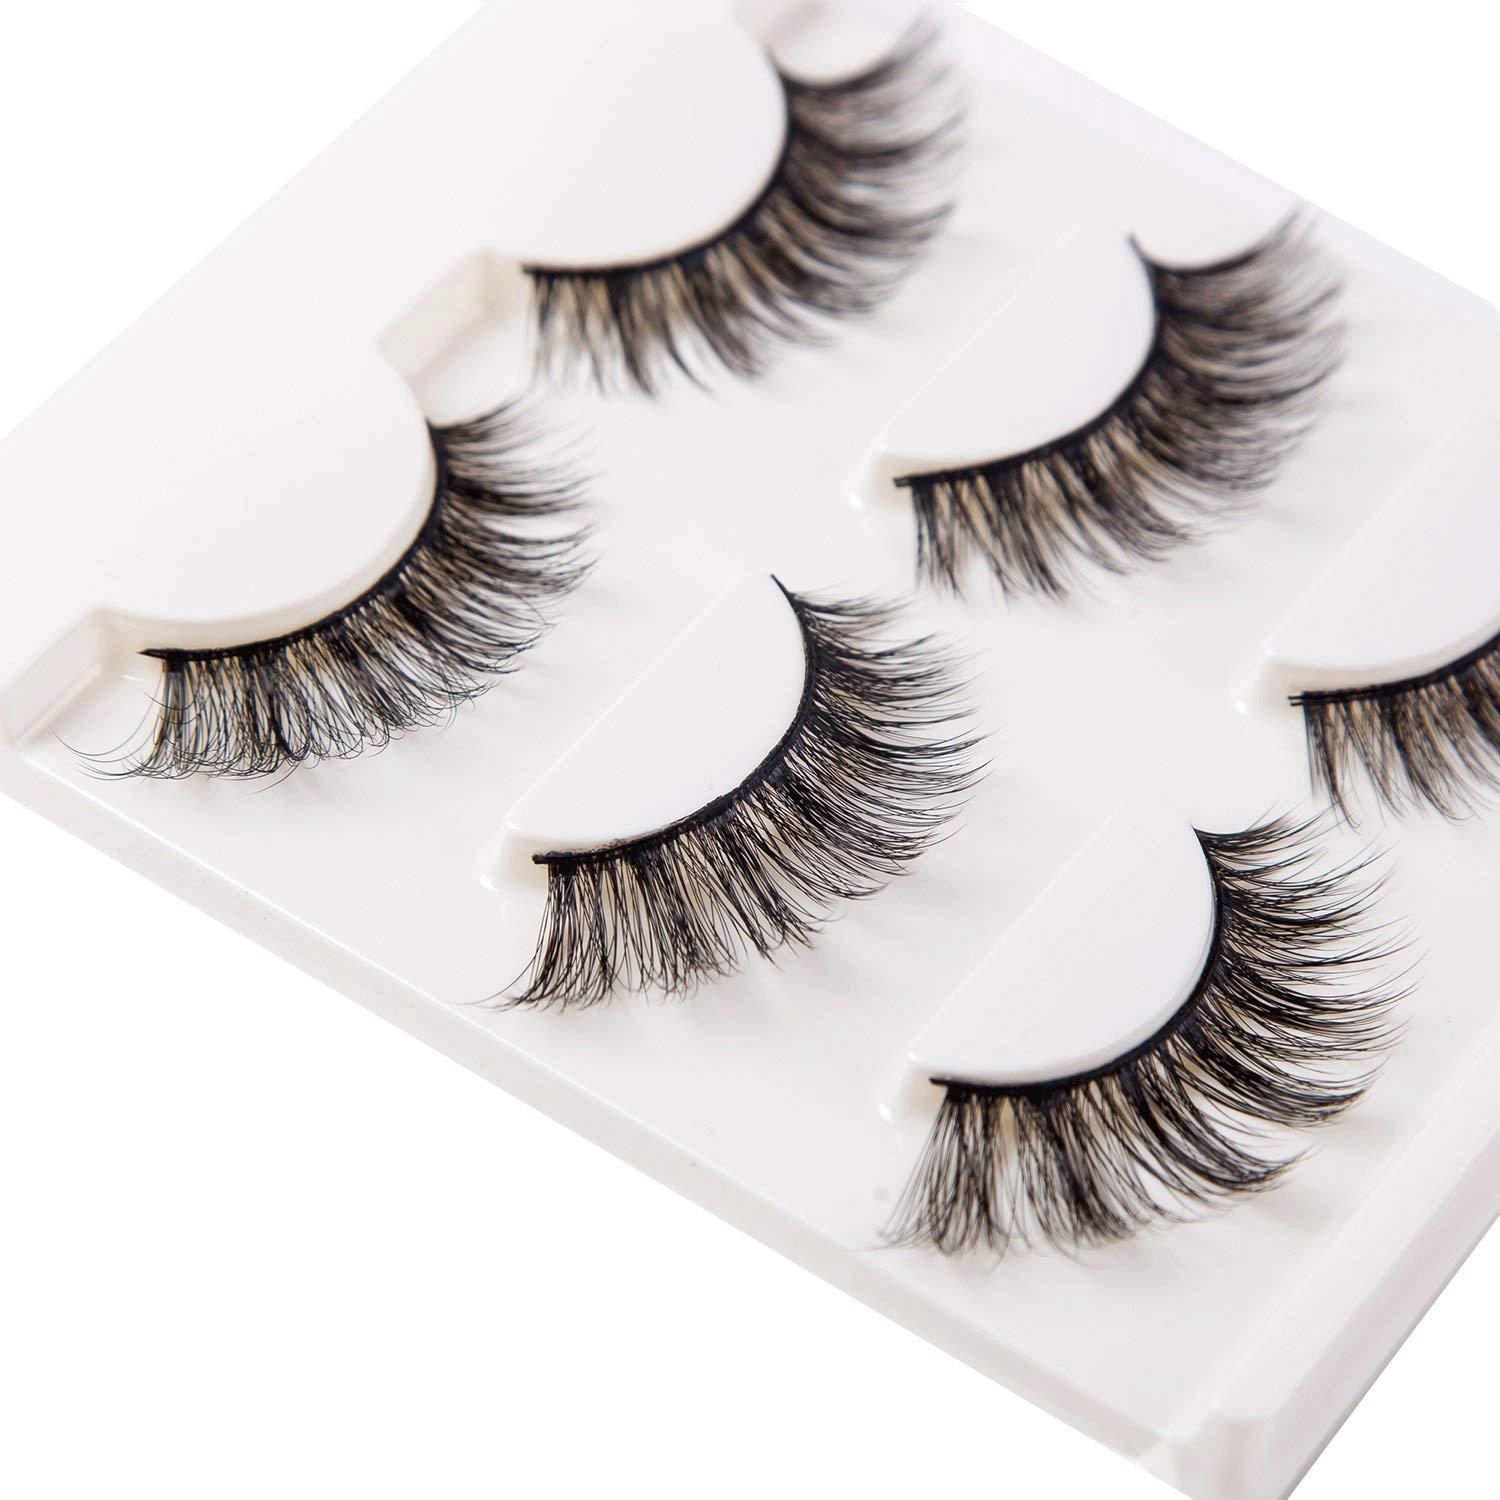 be16dffcc71 Amazon.com : 3D False Eyelashes Extensions 3 Pairs Long Lashes Strip with  Volume for Women's Make Up Handmade Soft Fake Eyelash : Beauty